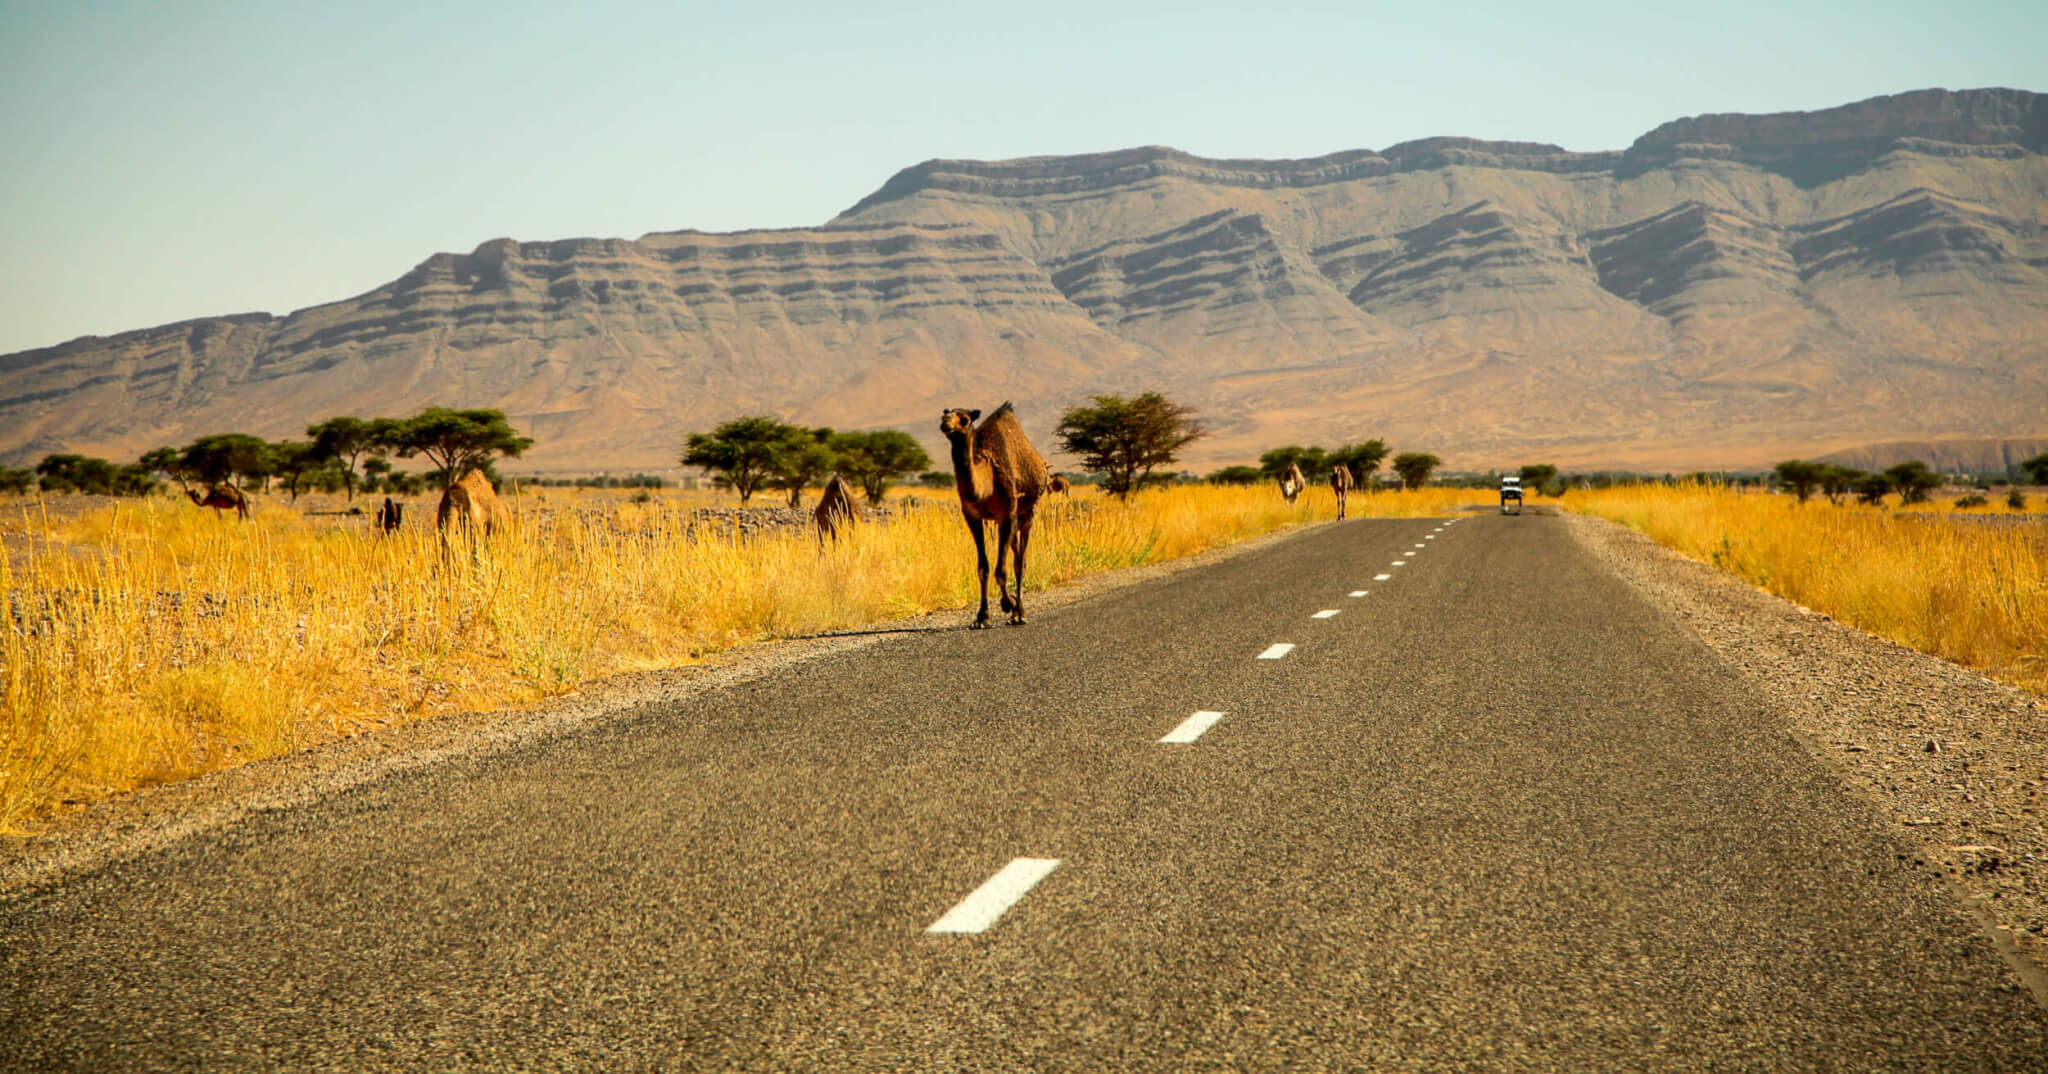 Camels along the road Ouarzzazate Morocco